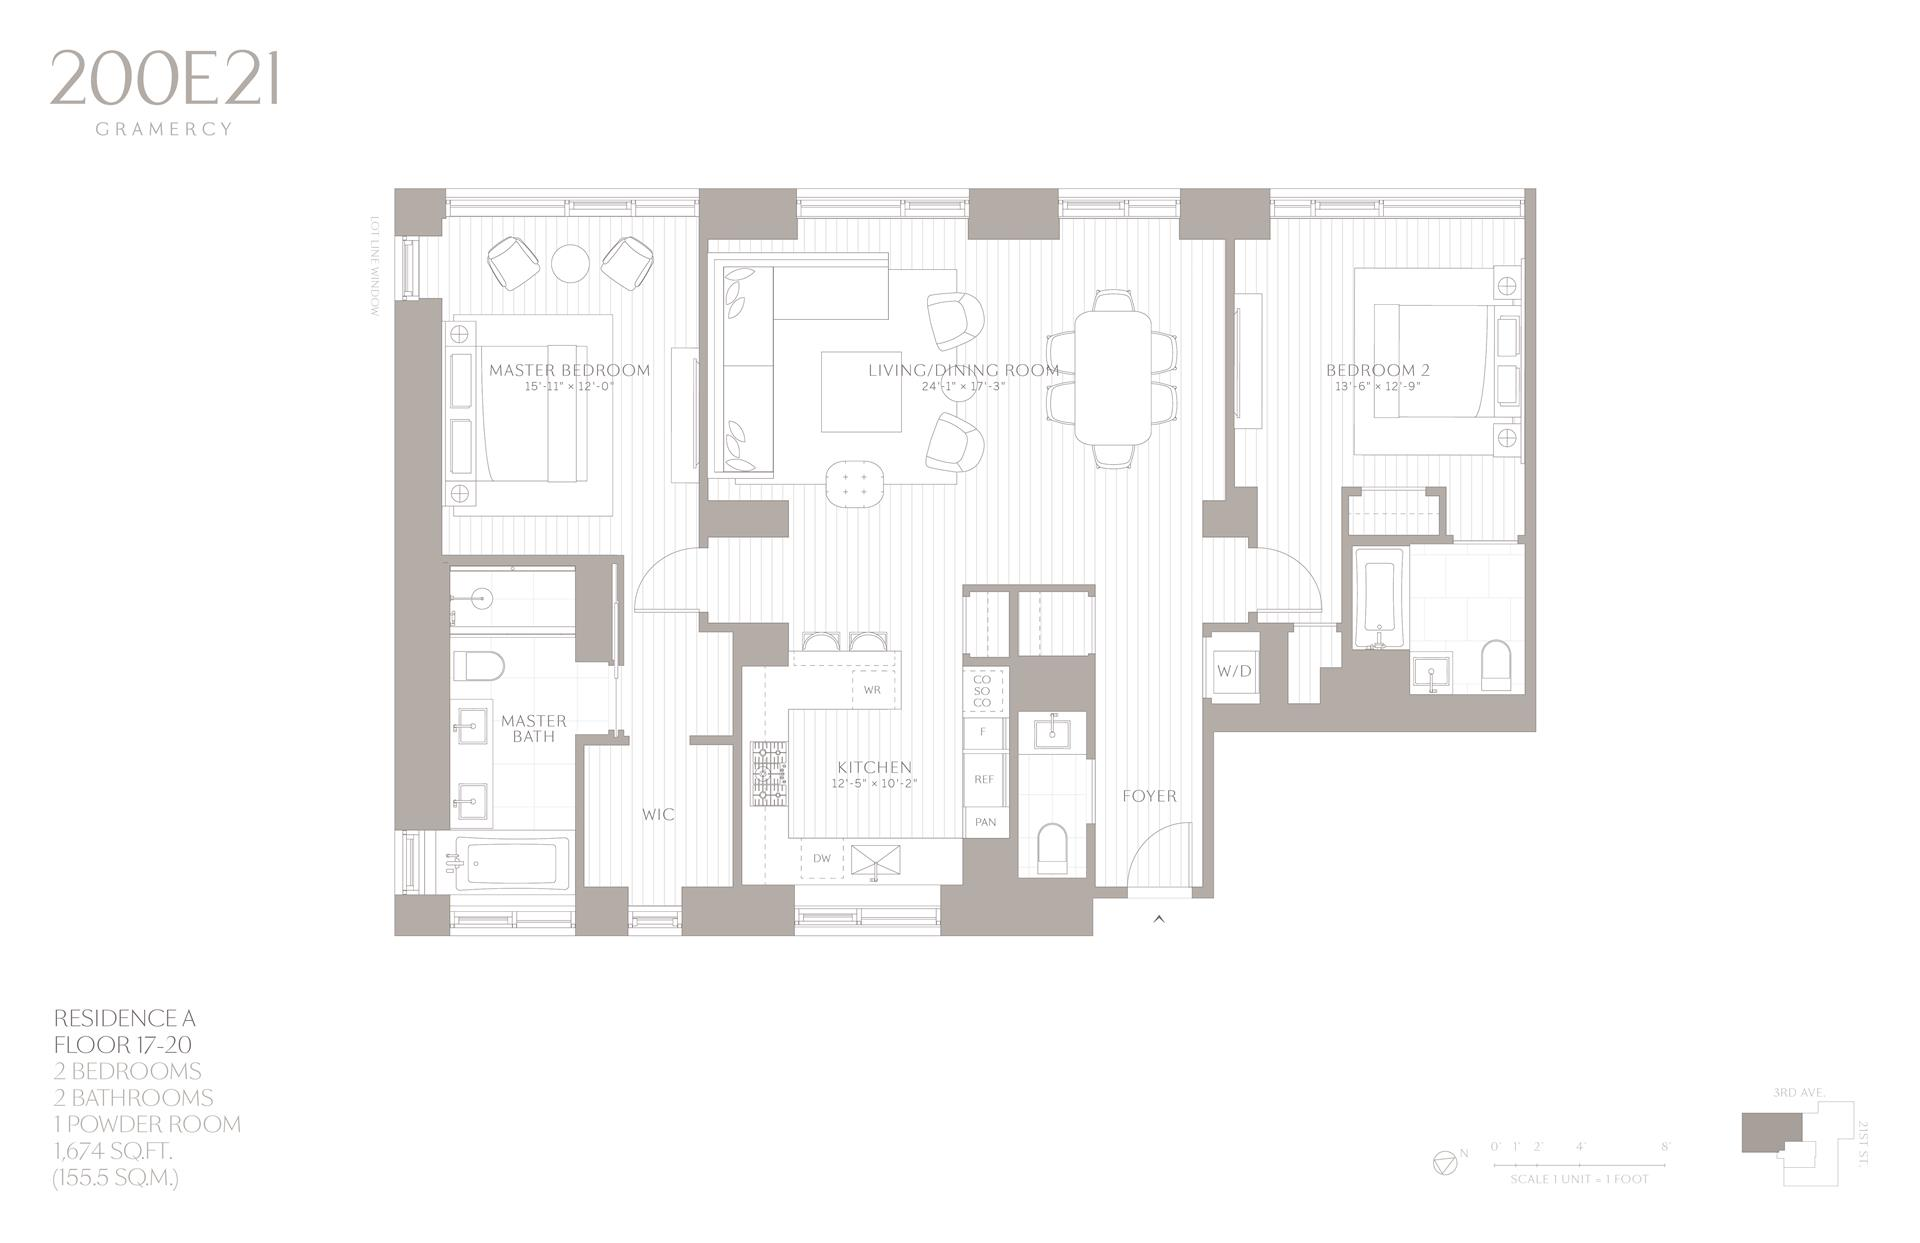 Floor plan of 200 East 21st Street, 18A - Gramercy - Union Square, New York